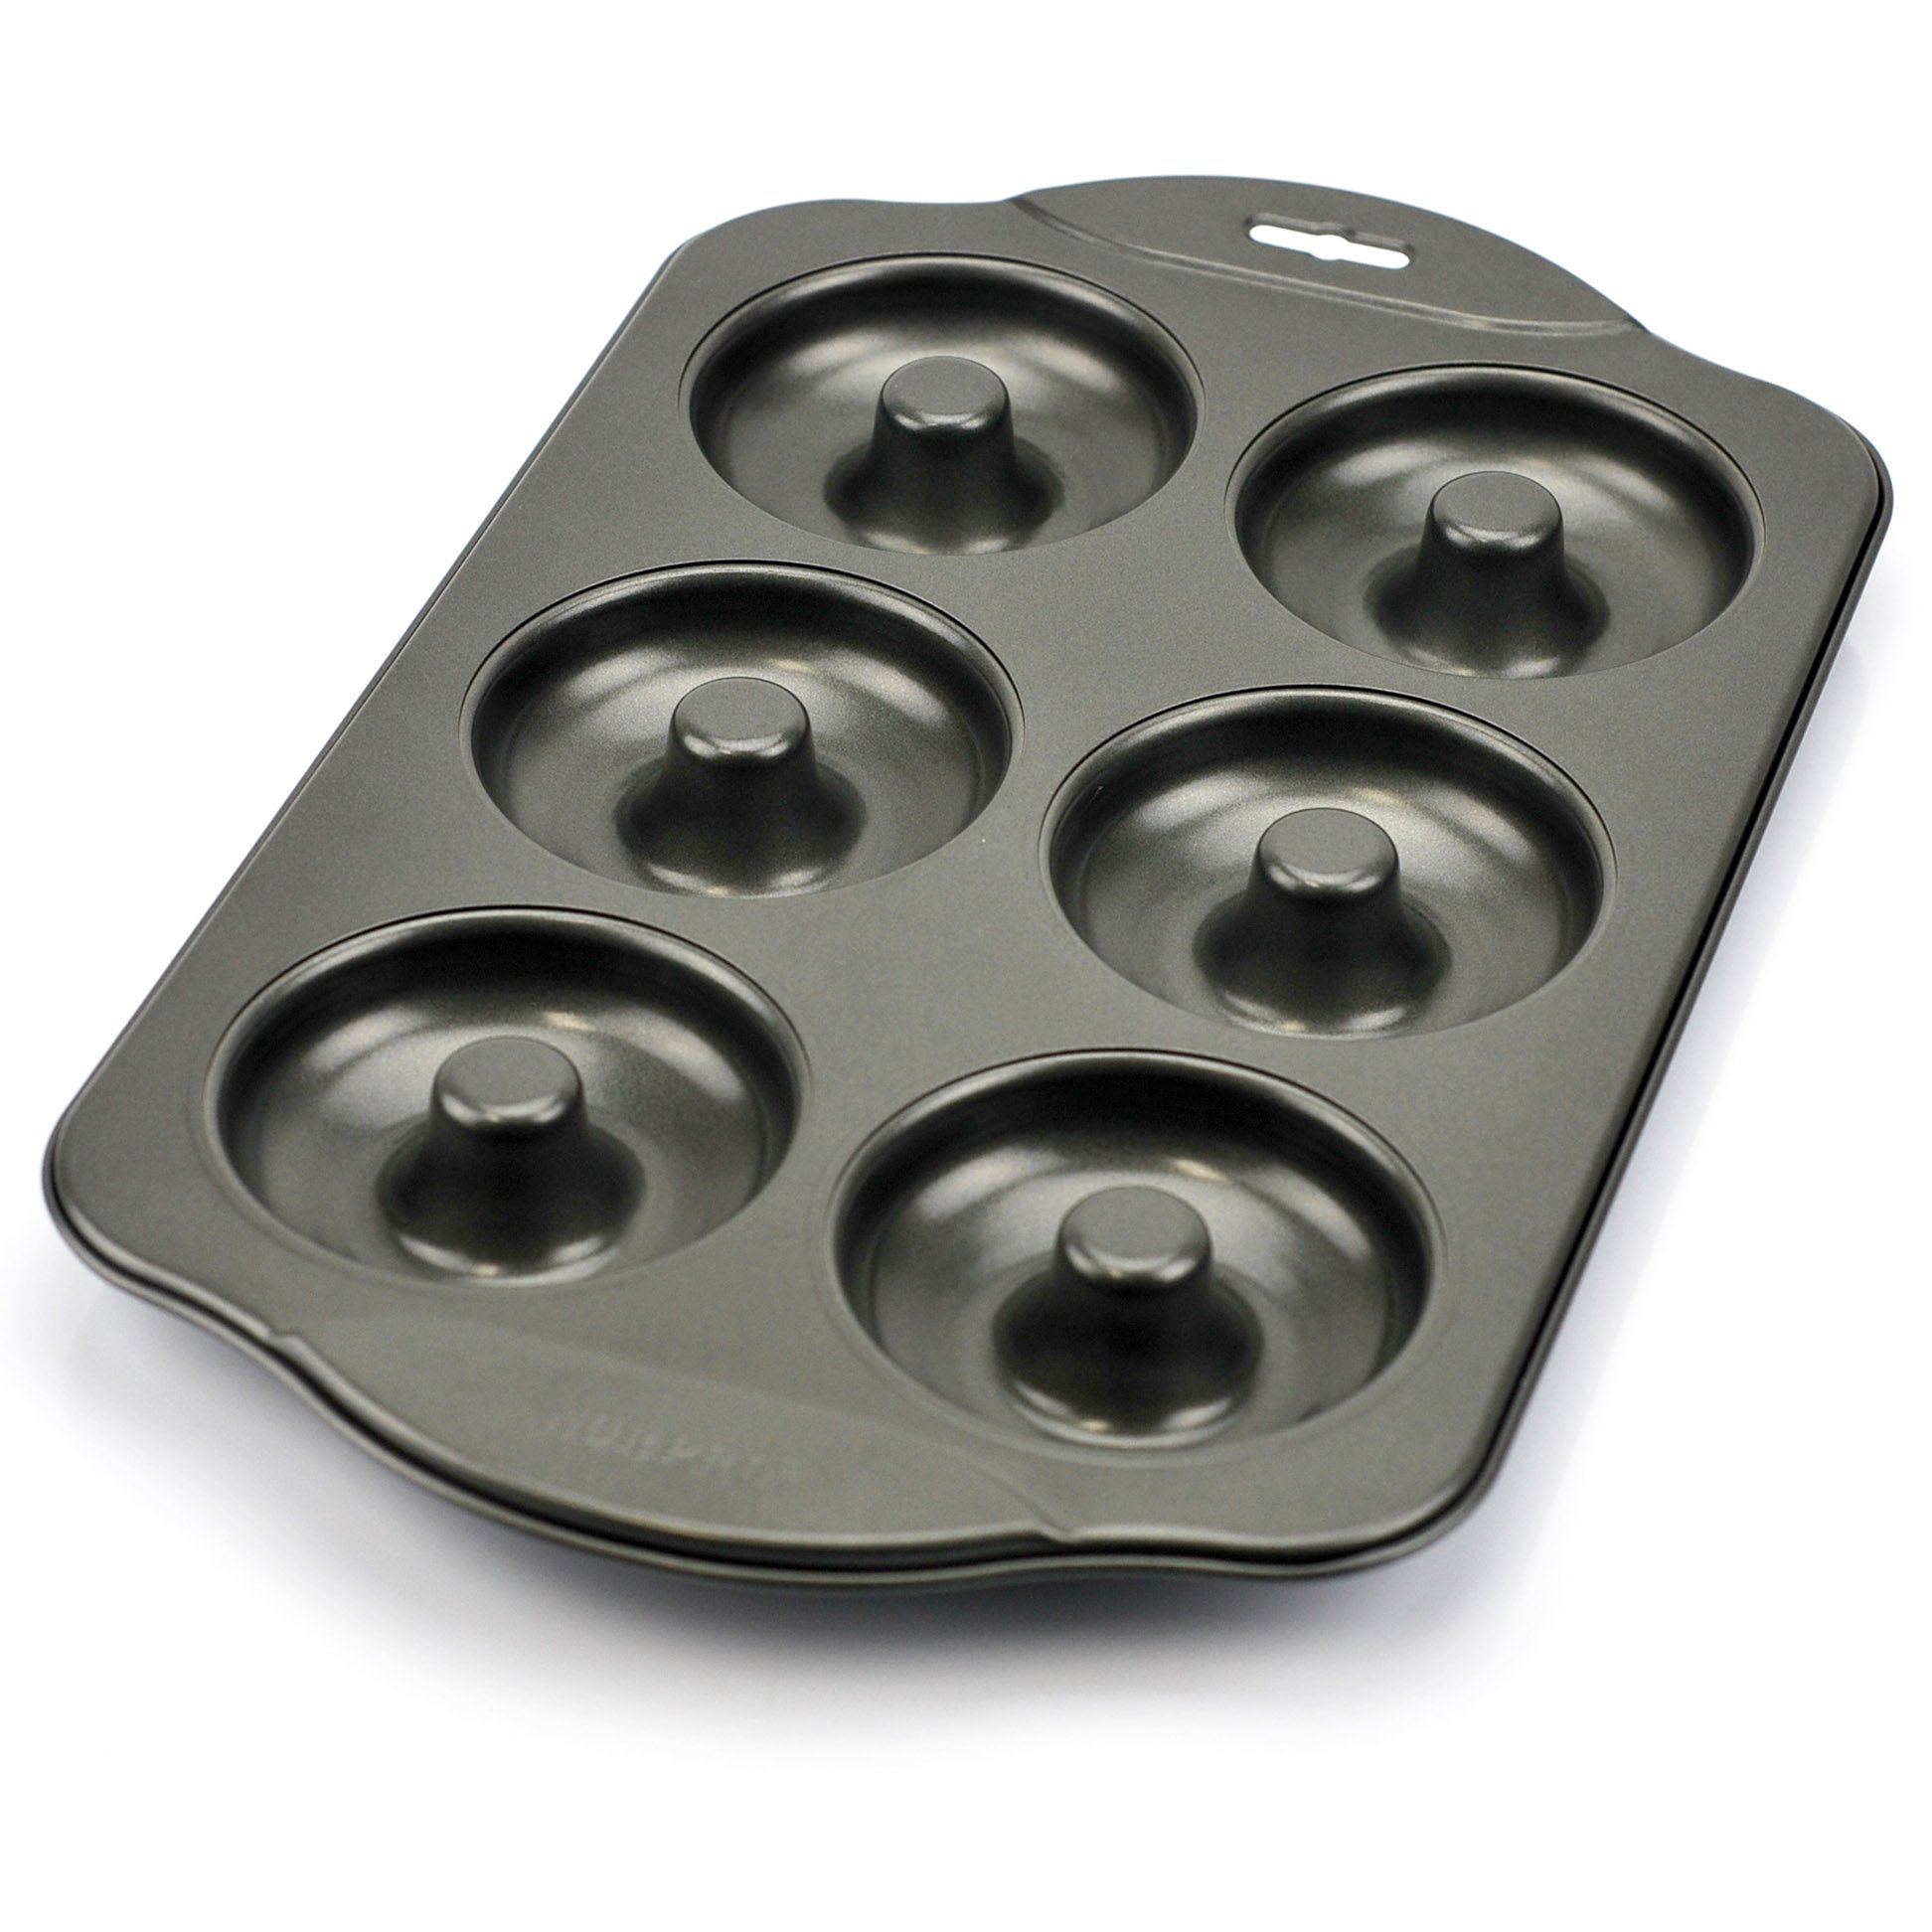 Donut Pan, Nonstick Mini Cast Iron Donut Pan Stainless Steel with 6 Count - Silver Gray